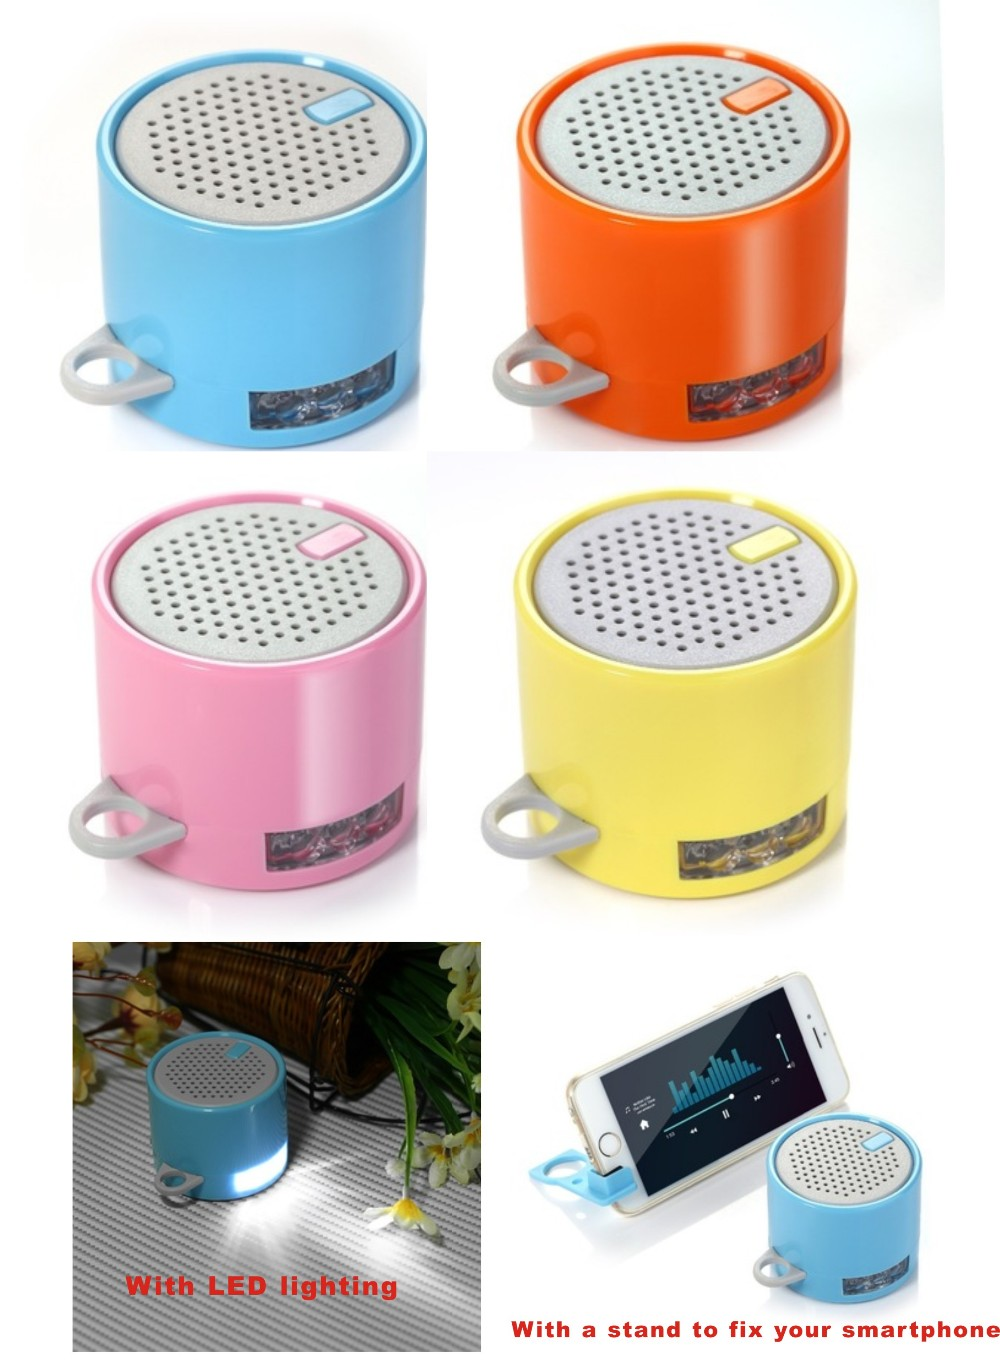 Cheap LED torch portable mini blue-tooth wireless speaker with phone stand